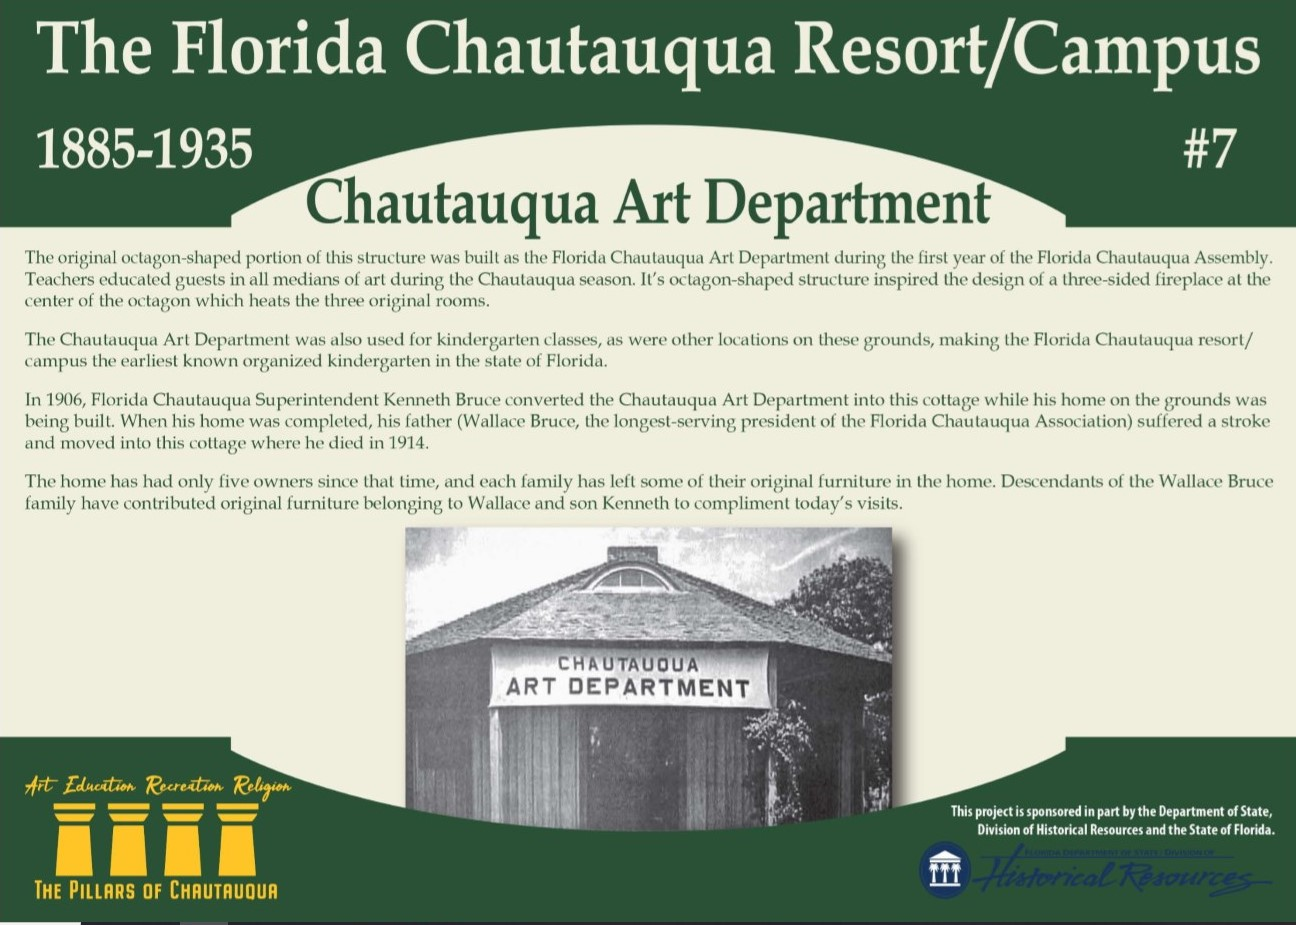 Sign about the history of the Chautauqua Art Department in DeFuniak Springs, Florida